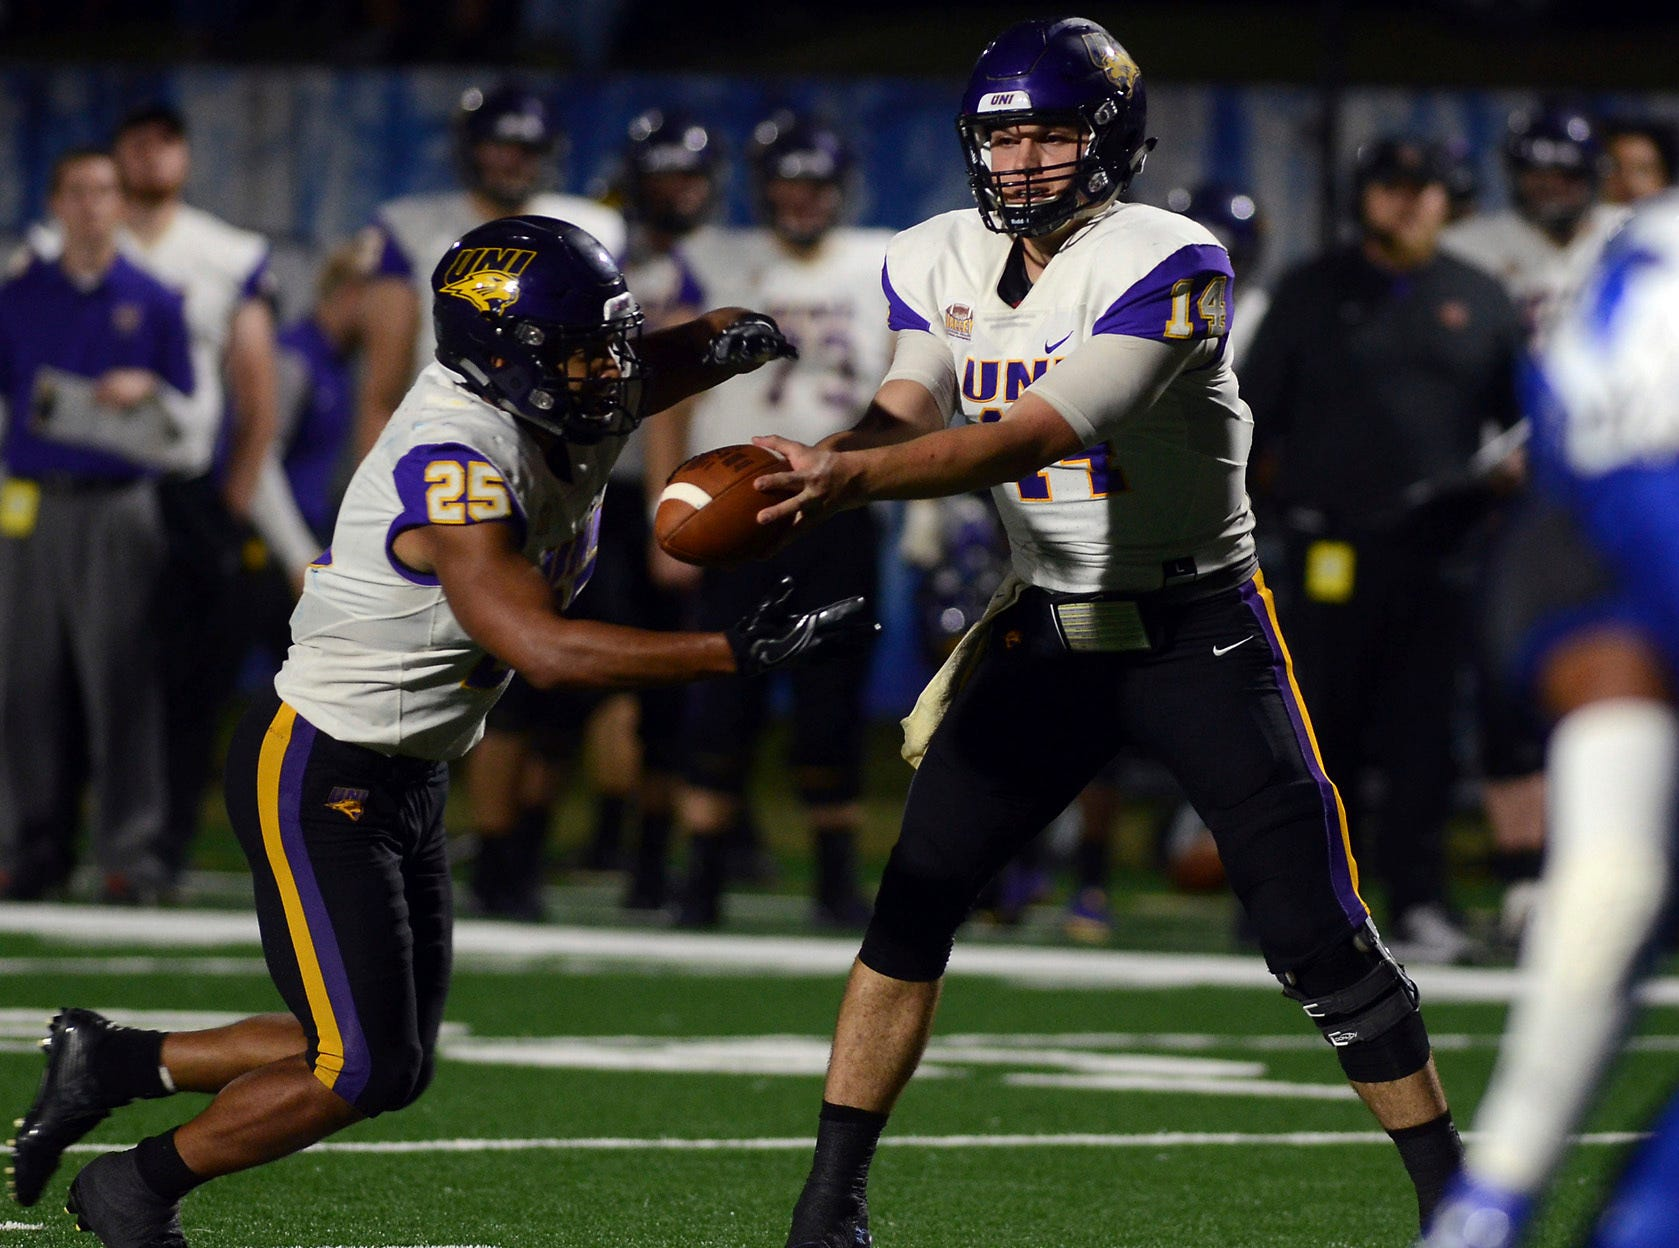 Northern Iowa's Eli Dunne, right, hands the ball off to Trevor Allen during the team's NCAA college football game against Indiana State on Thursday, Sept. 27, 2018, in Terre Haute, Ind.